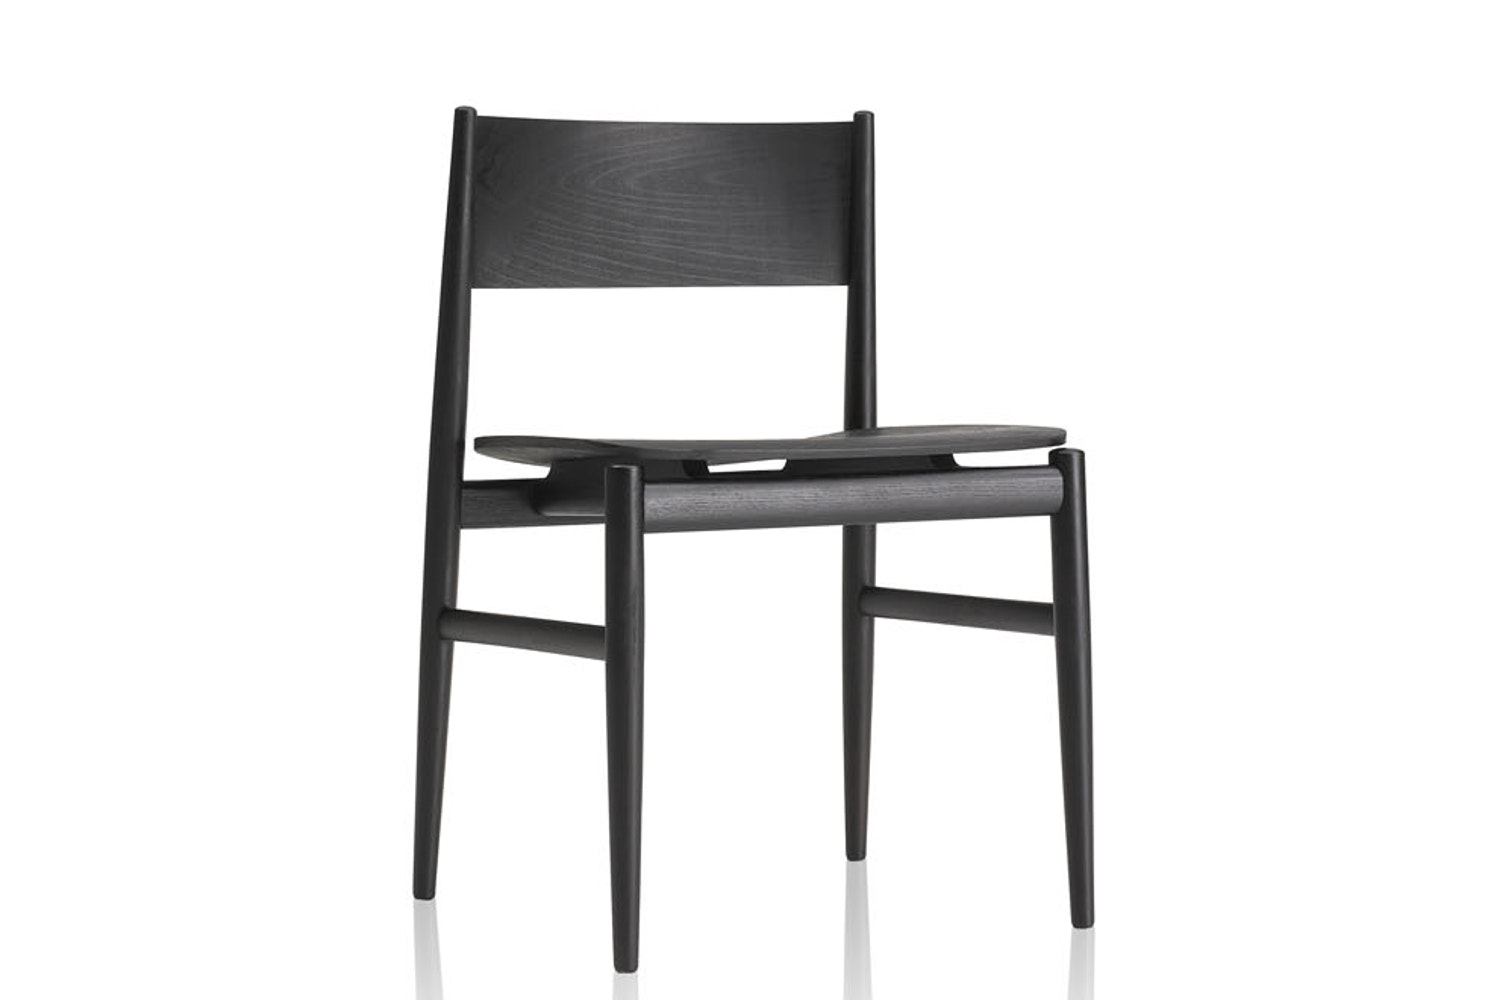 Neve Chair by Piero Lissoni for Porro